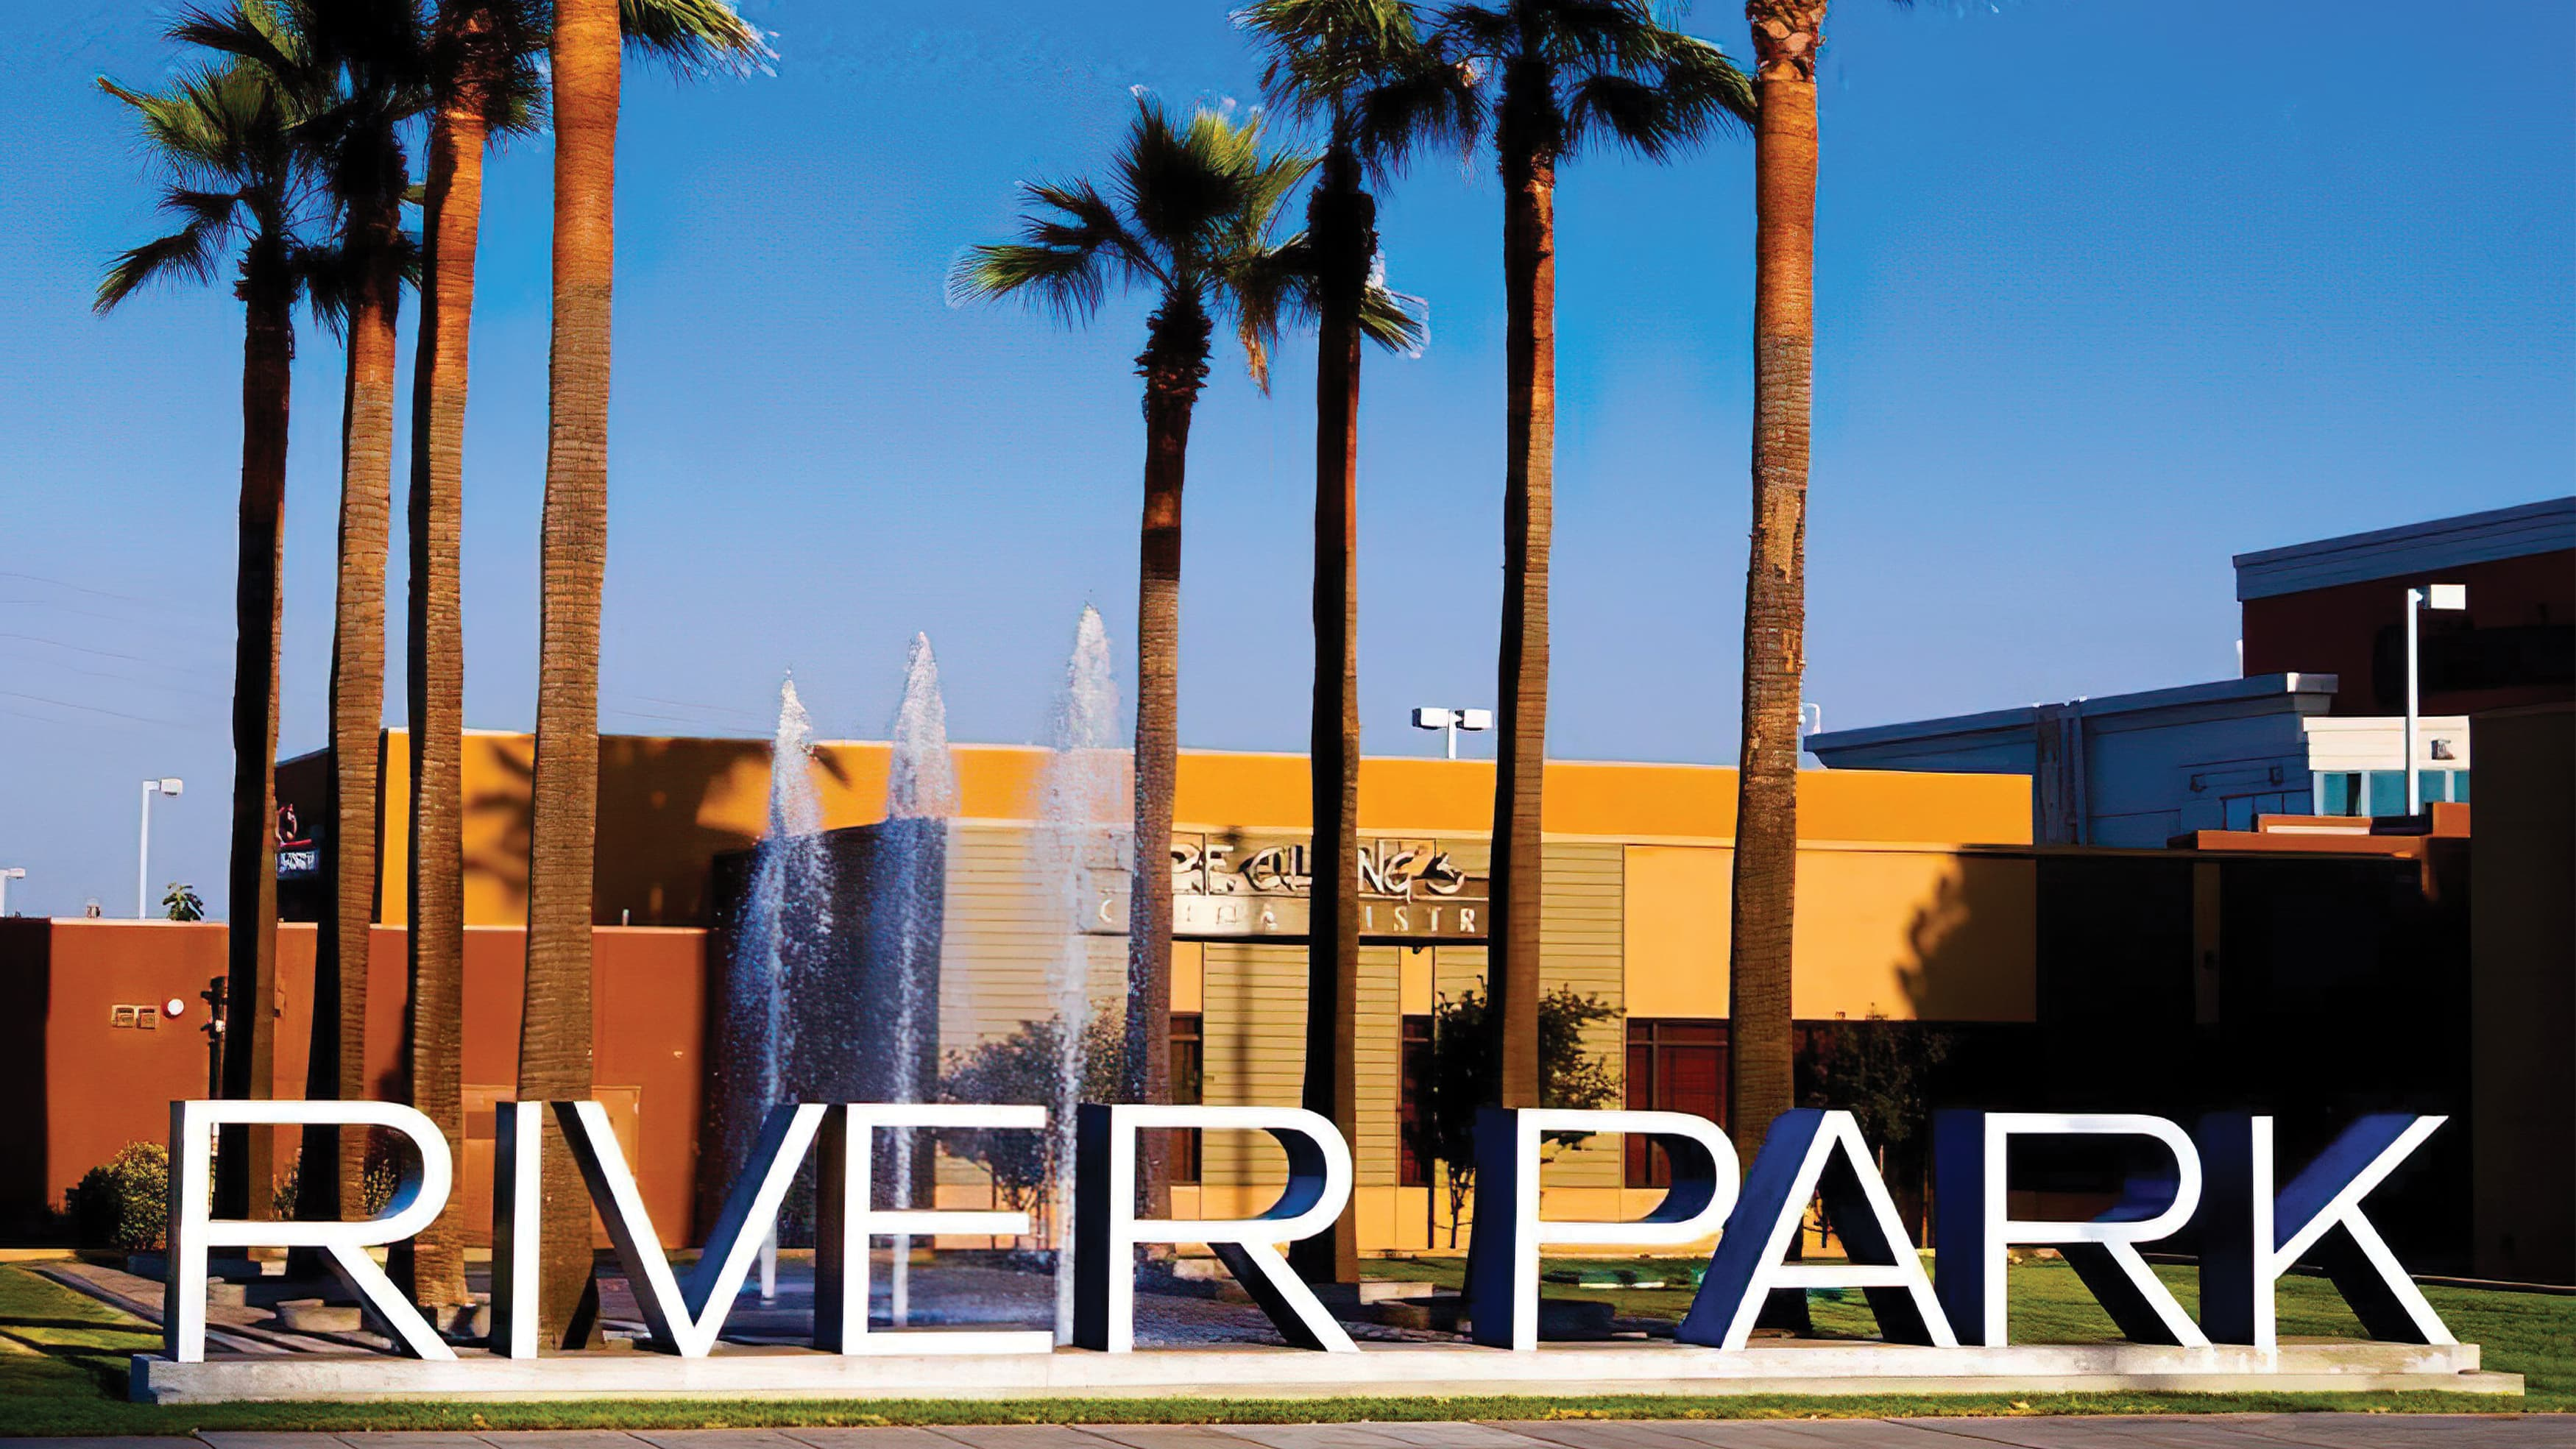 Large, dimensional Riverpark placemaking identity with white face and blue return flanked by a fountain and palm trees